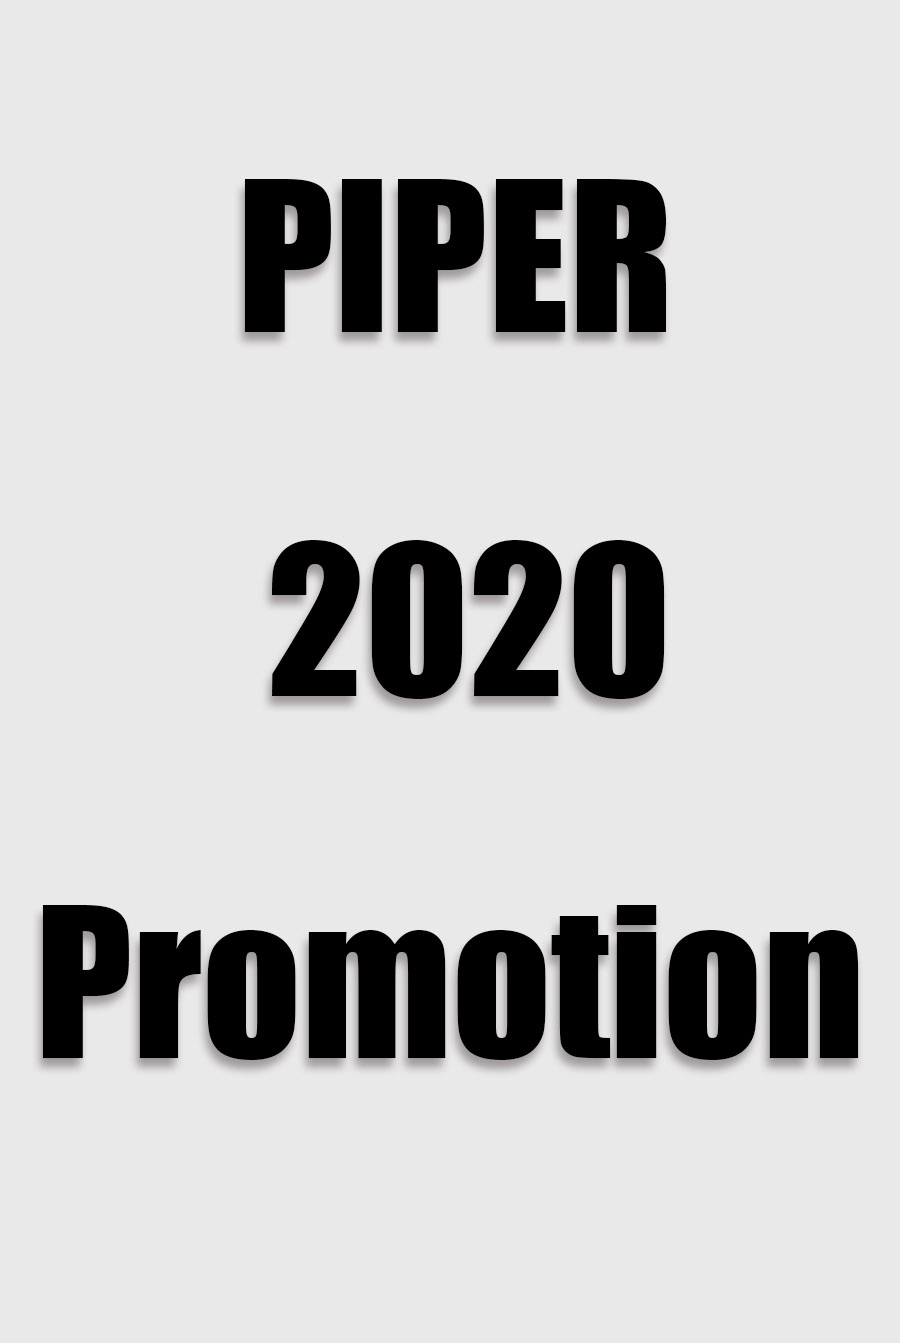 Piper 2020 Summer Promotion